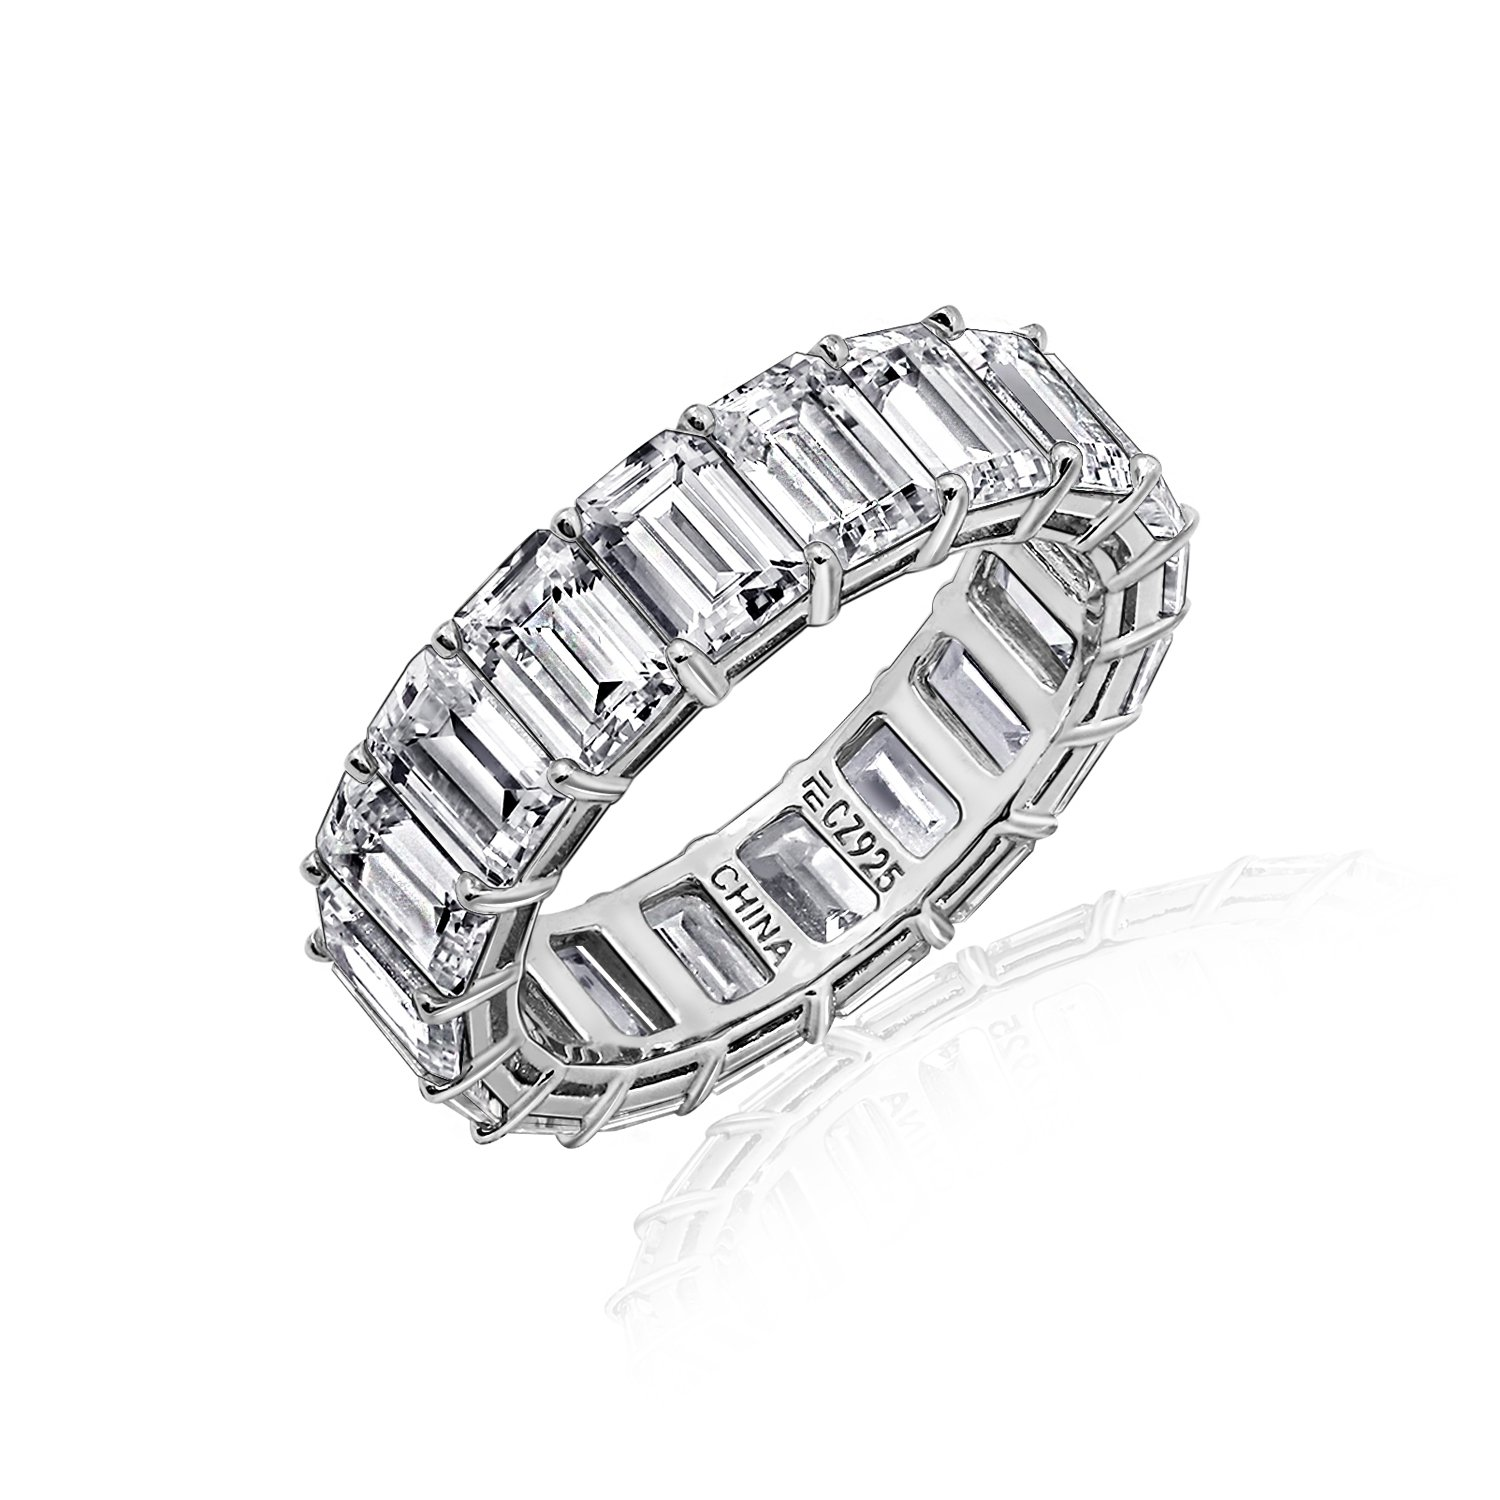 DIAMONBLISS Sterling or 14K Gold Clad Cubic Zicornia Emerald Cut Band Ring -Rhodium, size 8